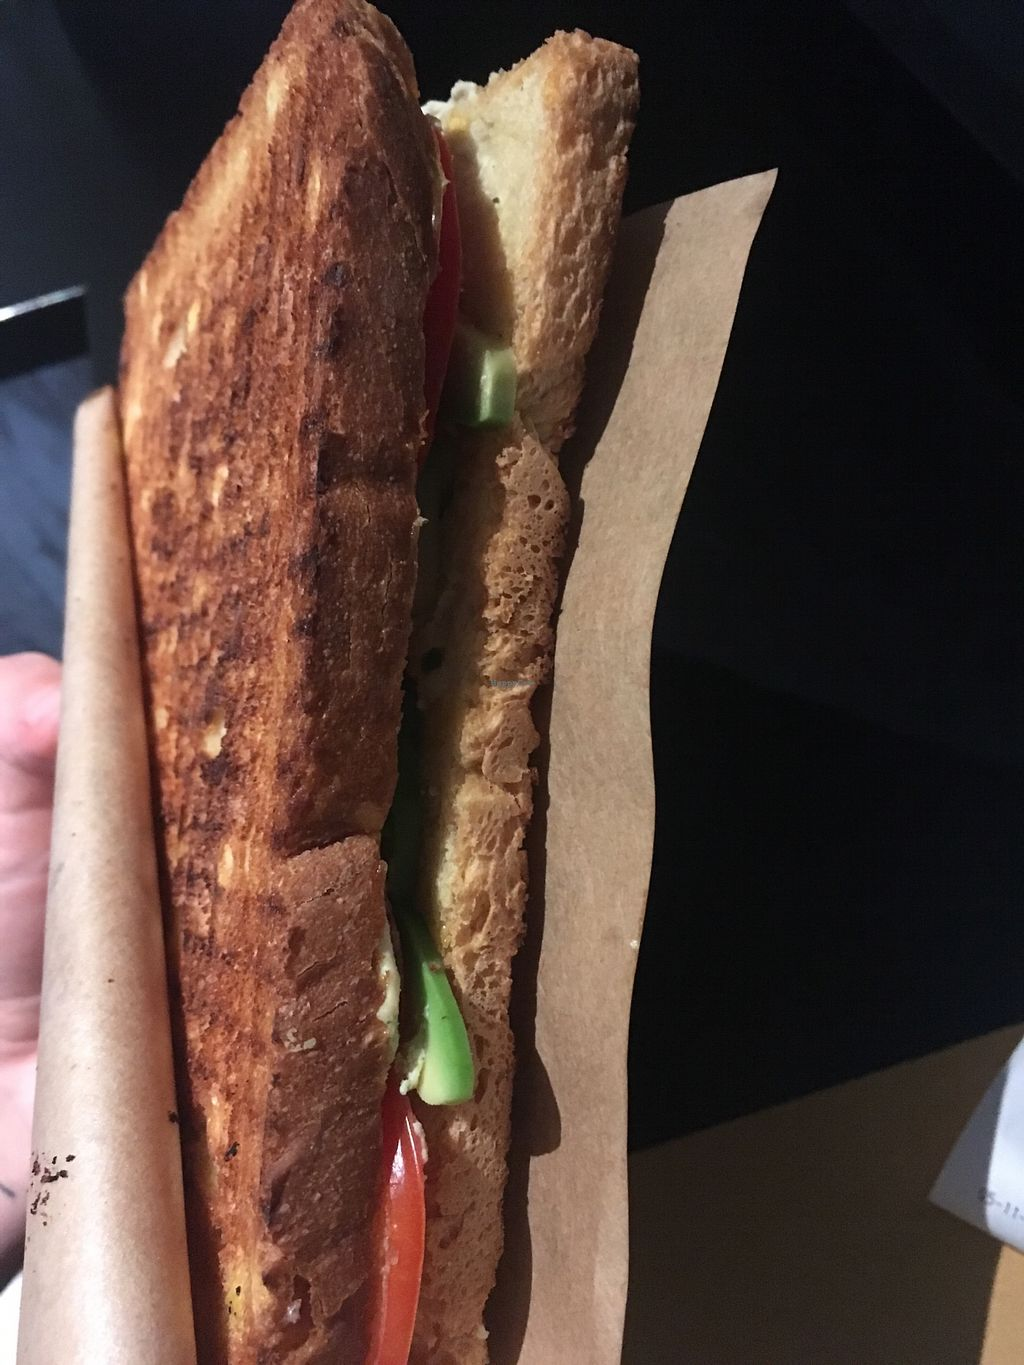 "Photo of streeTOAST  by <a href=""/members/profile/EliseBoccanfuso"">EliseBoccanfuso</a> <br/>An unfortunately not particularly enlightening photo of their vegan Malibu sandwich. It was good! :) <br/> November 14, 2017  - <a href='/contact/abuse/image/86252/325671'>Report</a>"